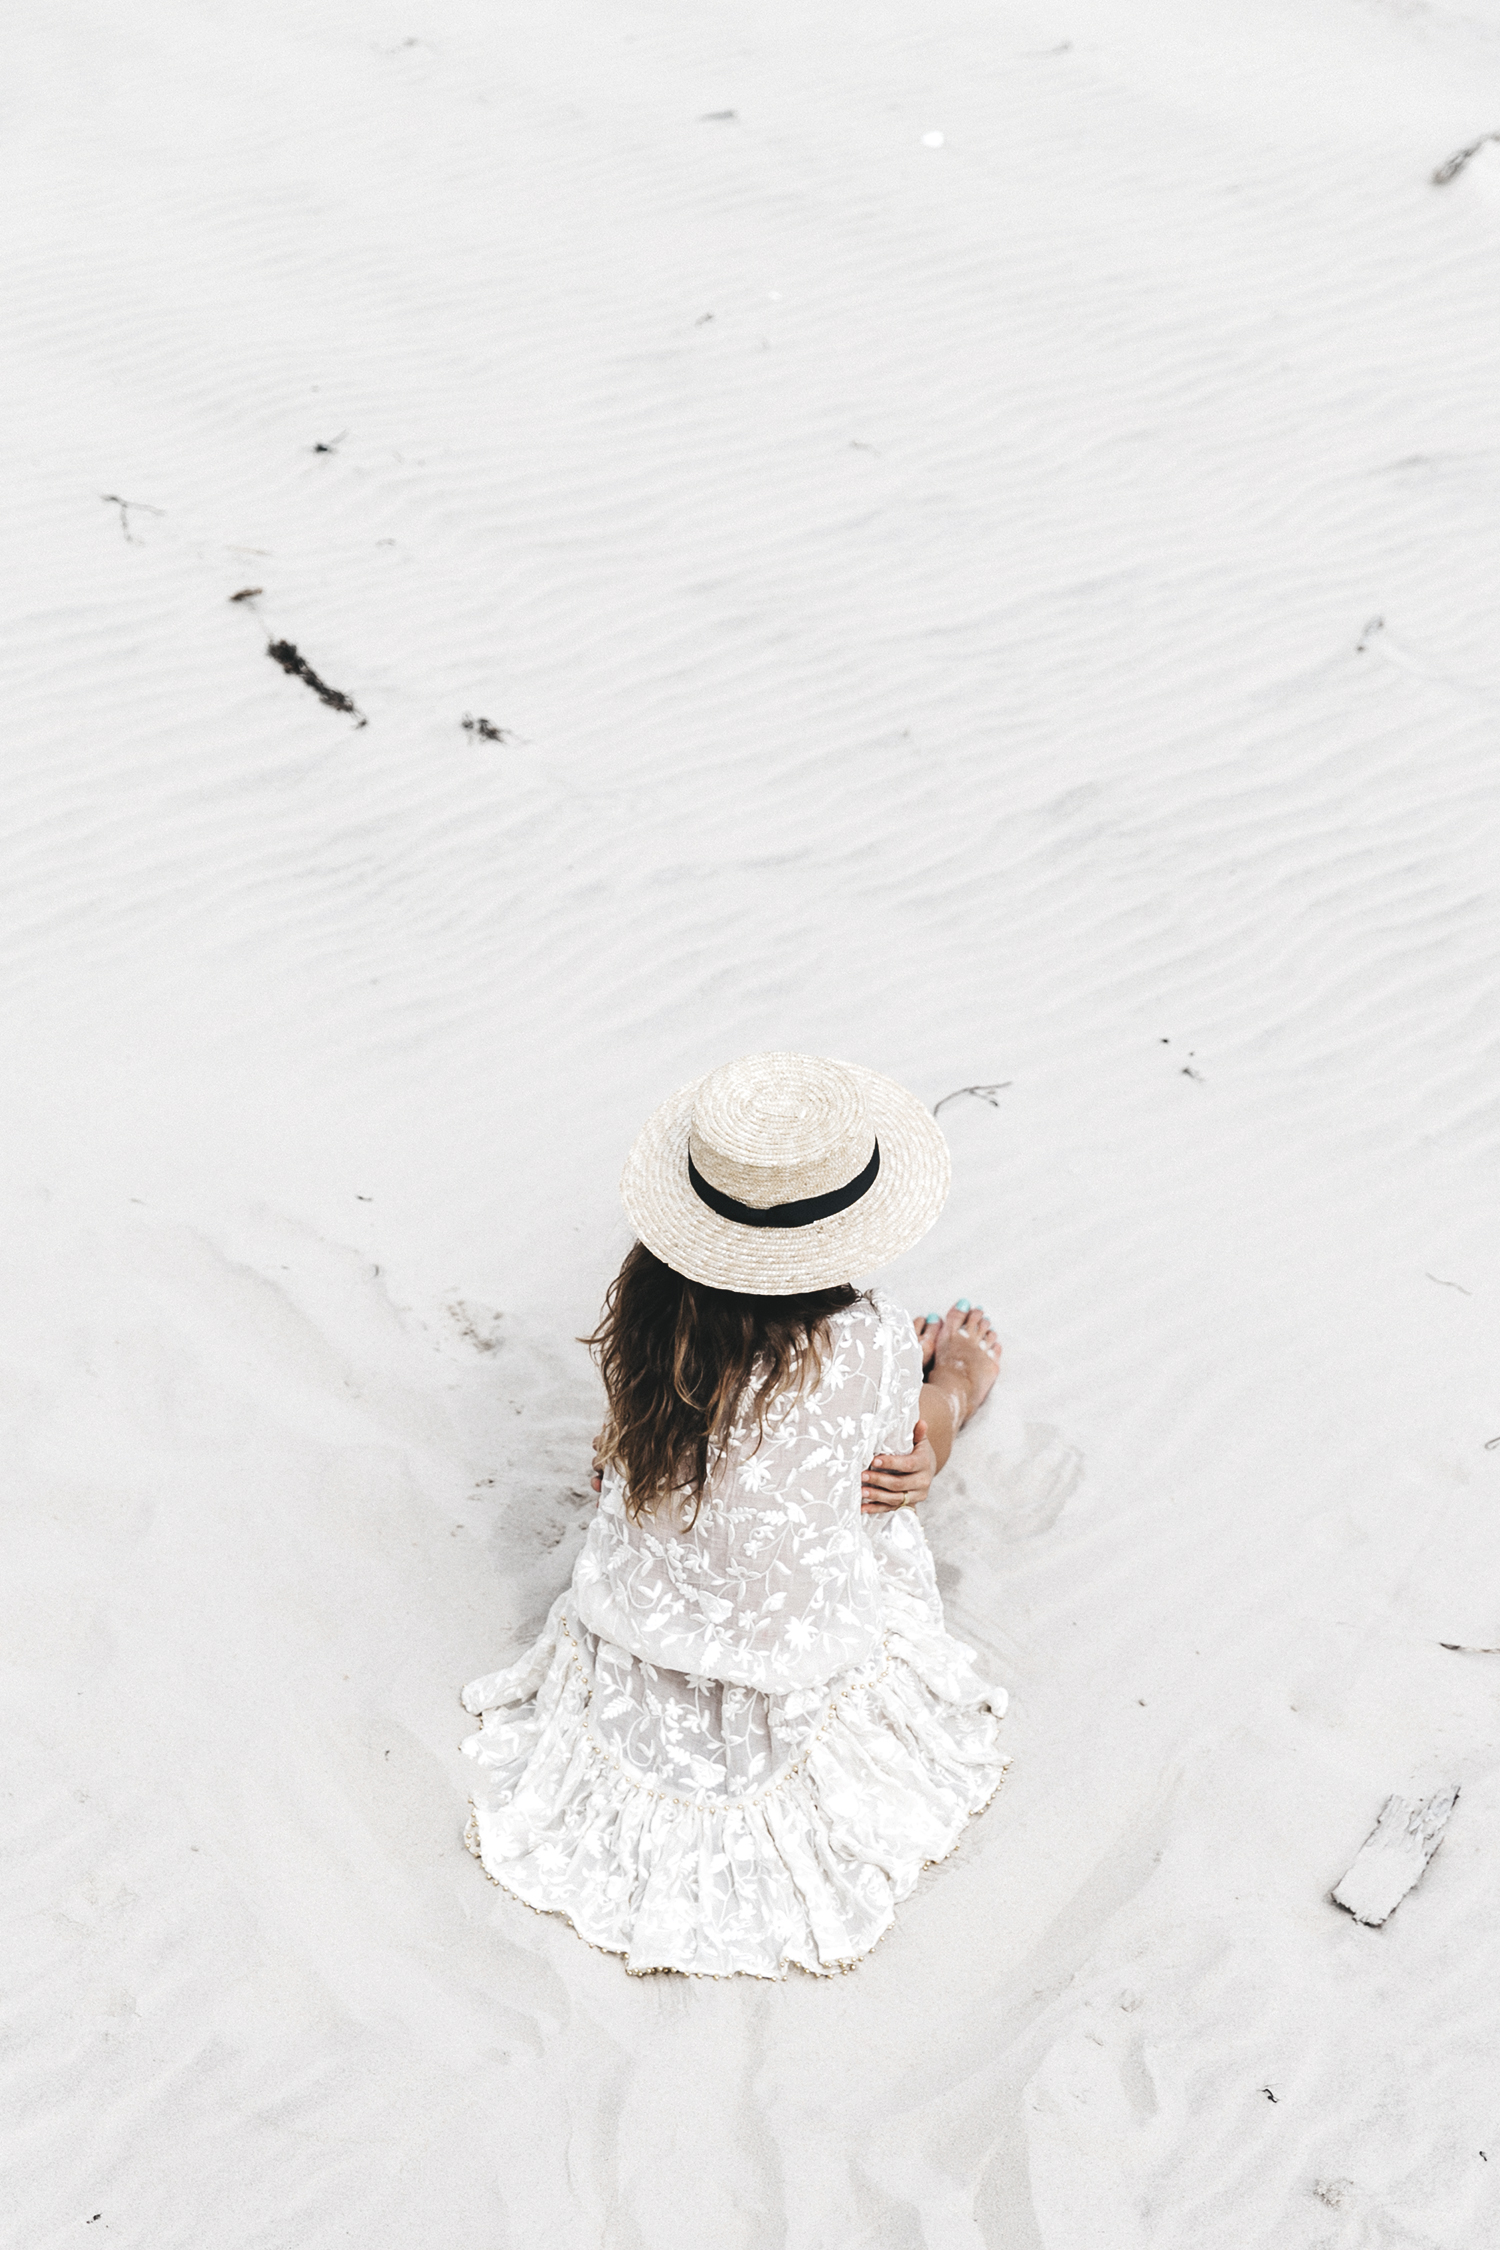 Revolve_in_The_Hamptons-Zimmermann-Embroidered_Dress-WHite_Dress-Chloe_Fay_Bag-Chloe_Wedges-Outfit-62